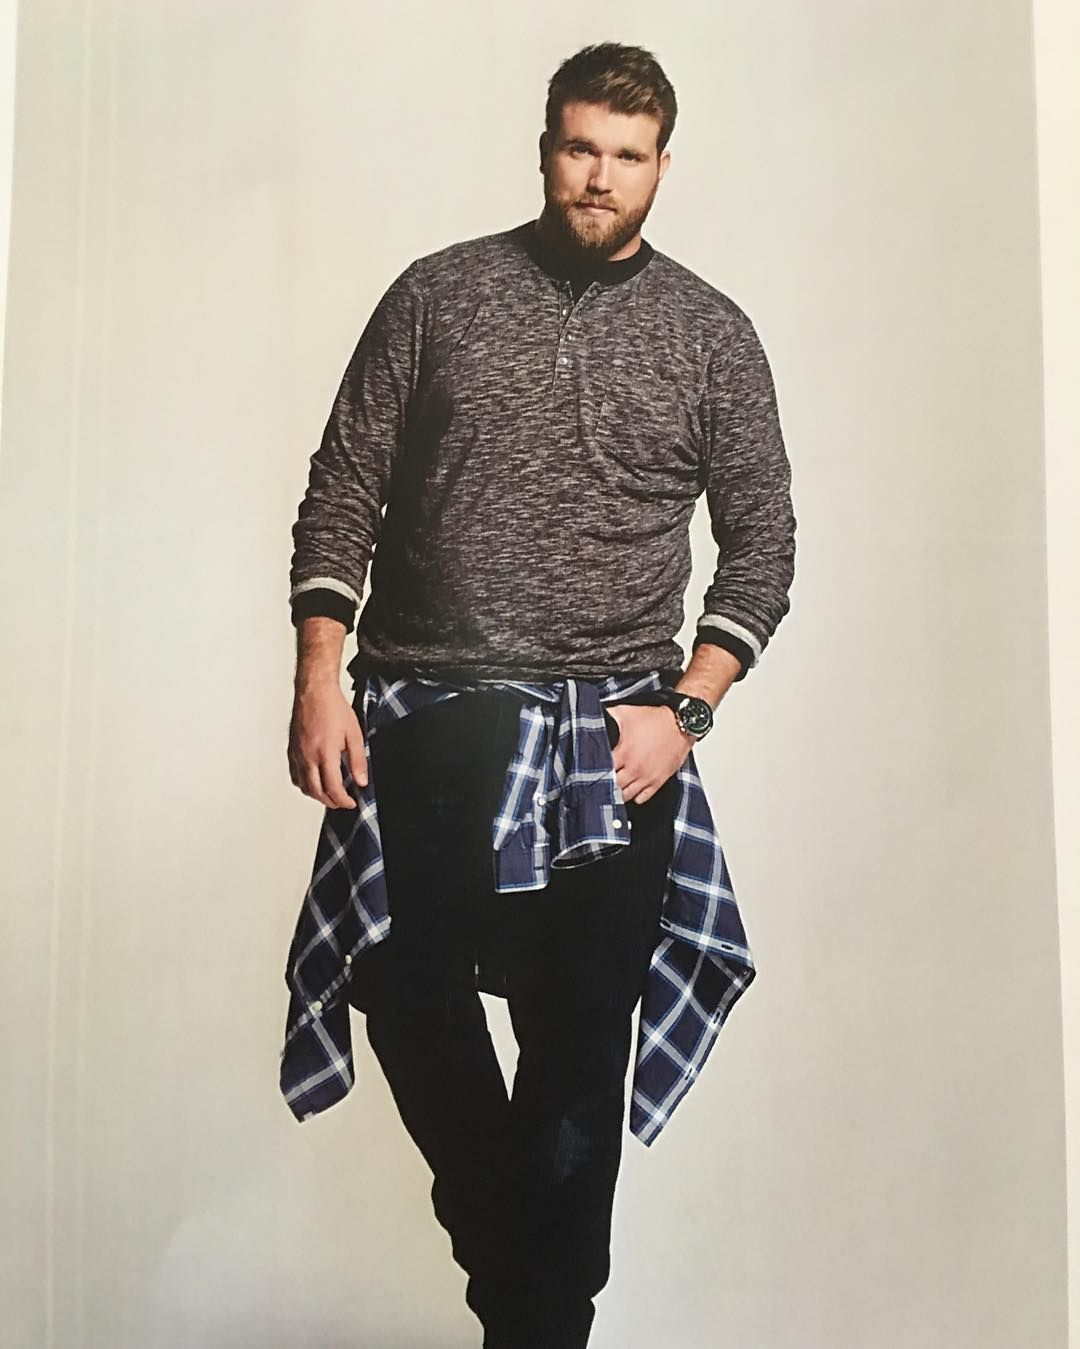 018daf99658ad Pin by Gianna Quinci on Art Direction   Backgrounds+Treatments   Pinterest    Plus size men, Mens fashion and Big men fashion